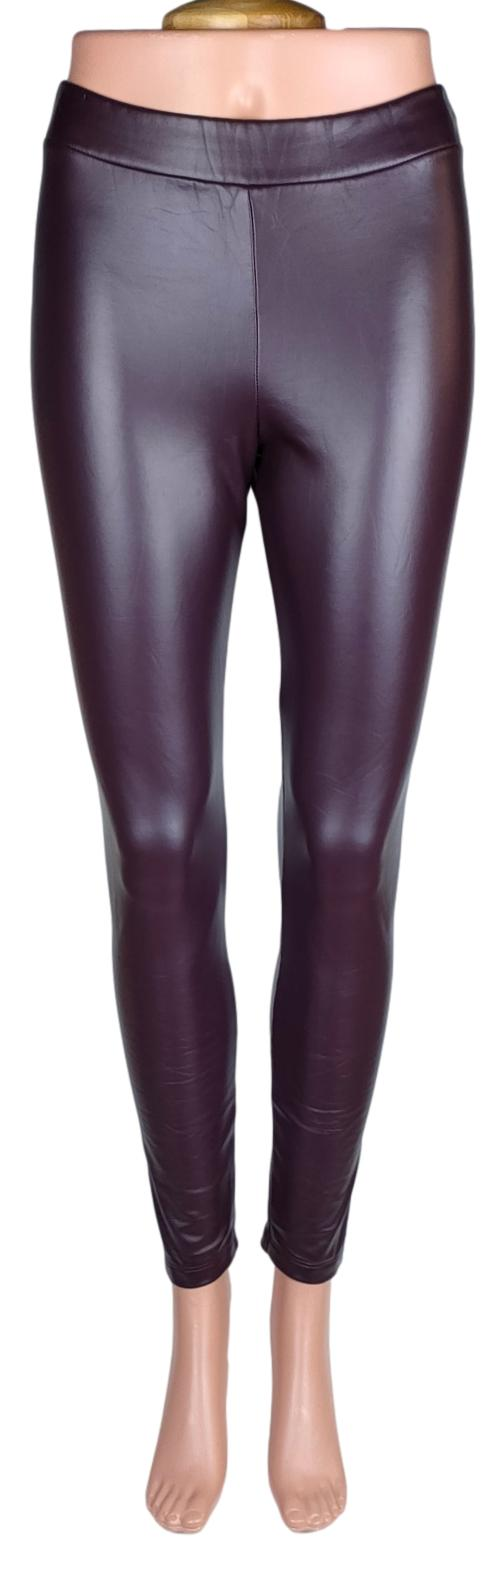 Calzedonia - Taille 32